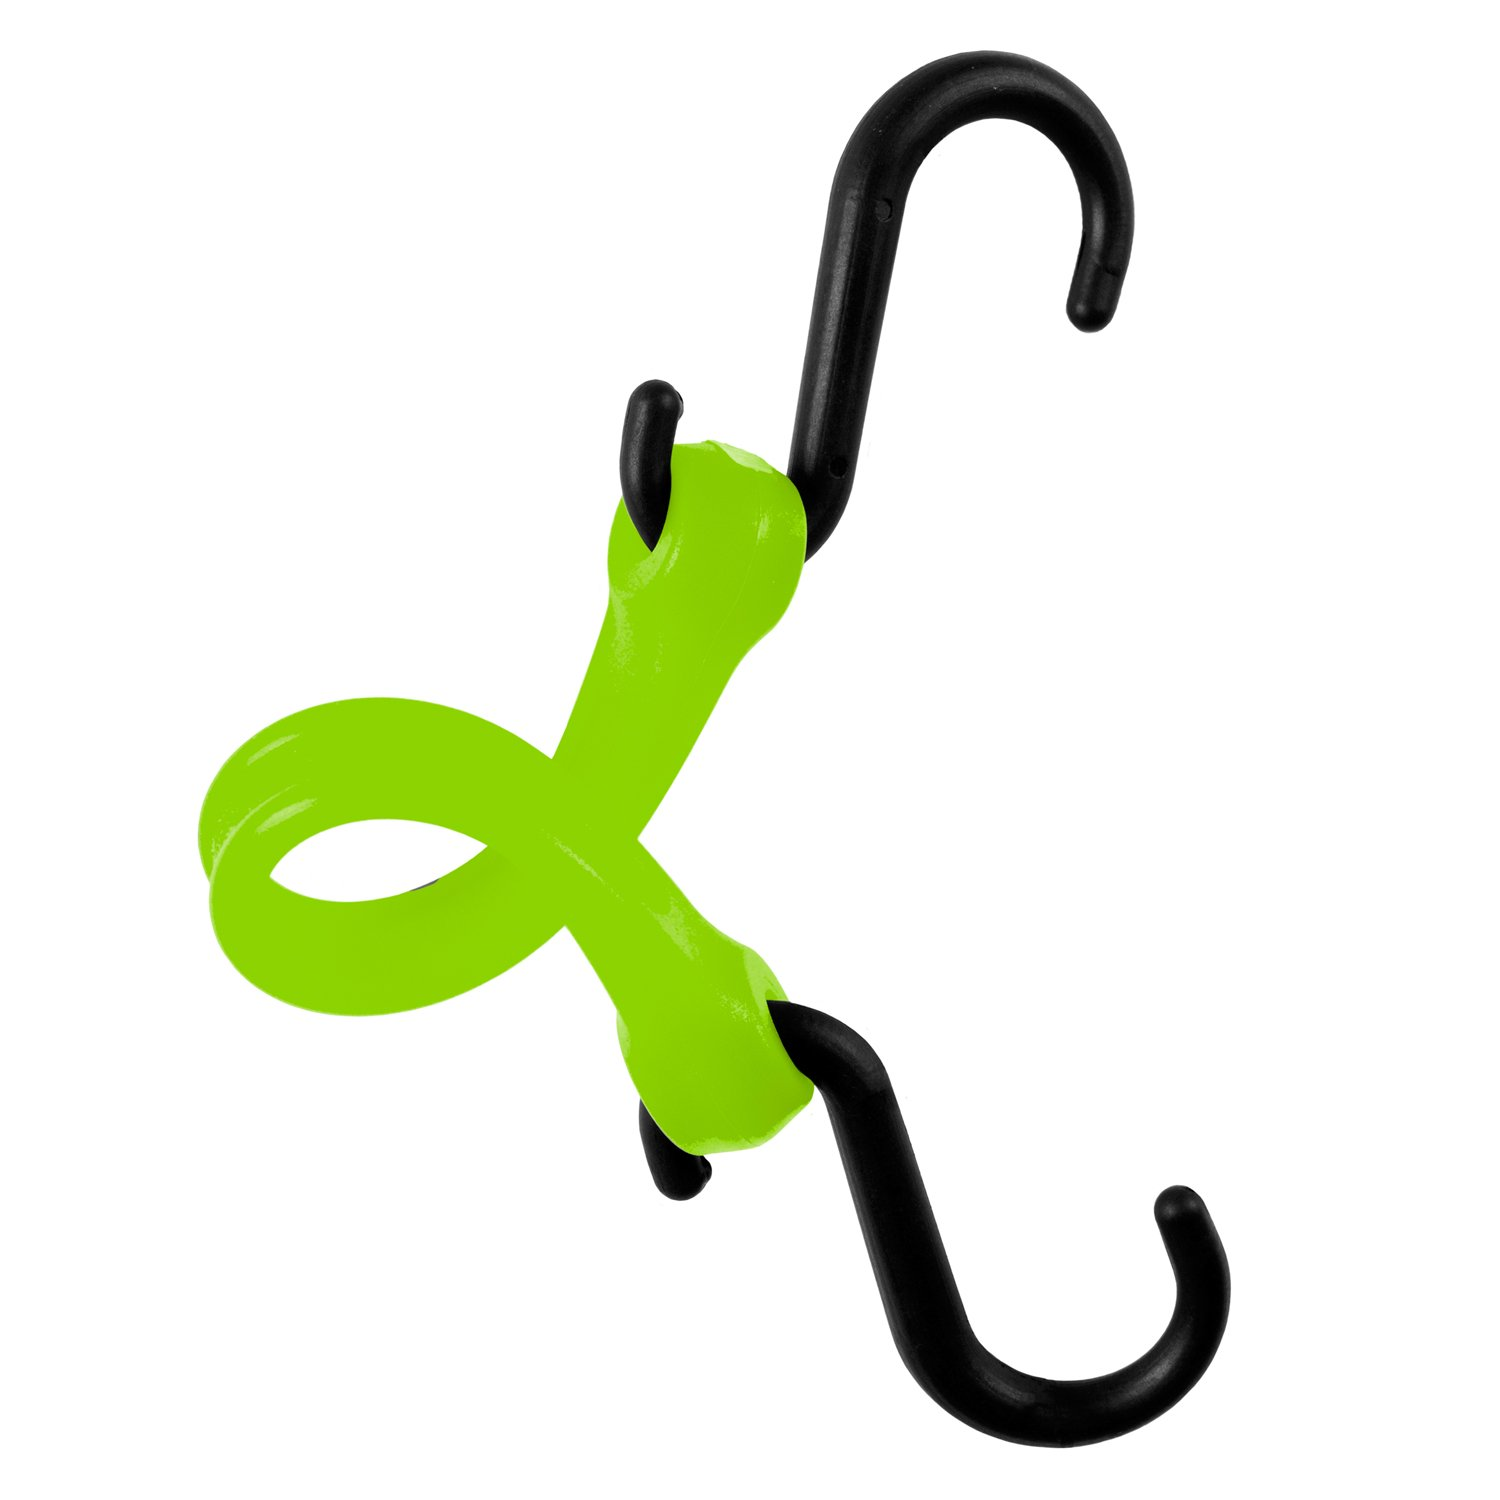 The Perfect Bungee by BihlerFlex, PBNH12G4PKP Standard Duty Strap, Nylon Hook, 12'', Safety Green, 4-Pack